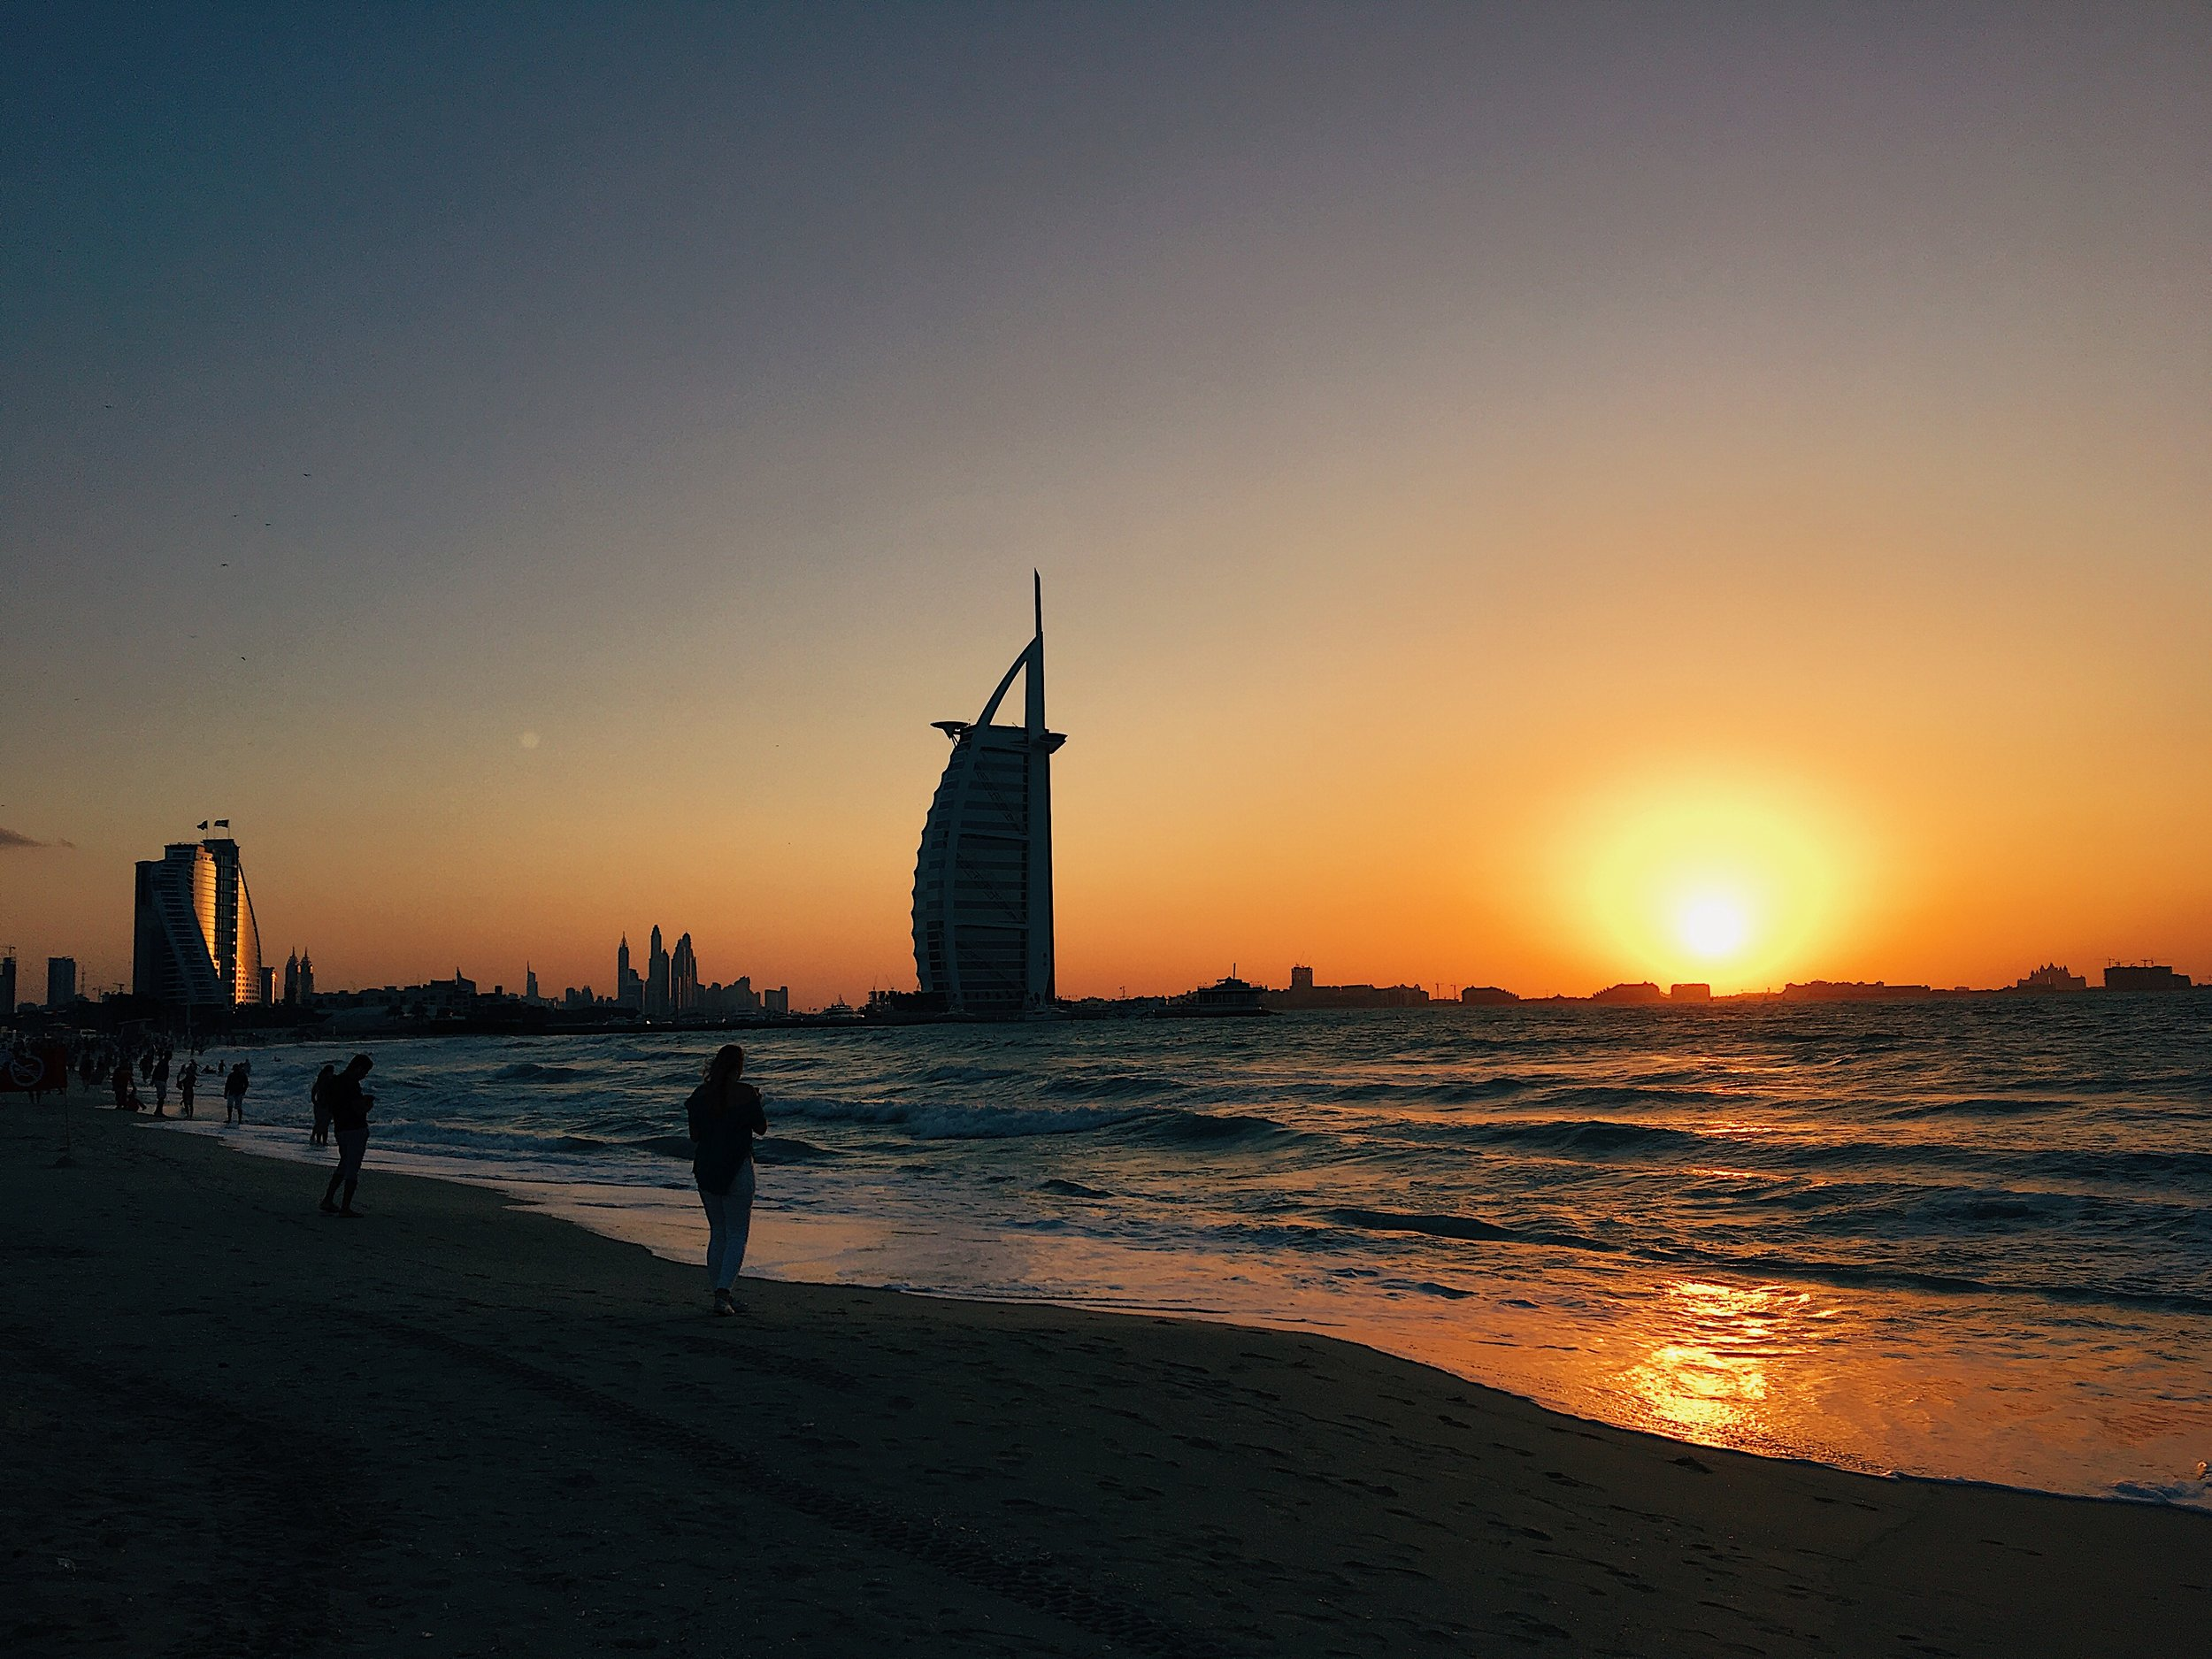 sunset@theburj.JPG